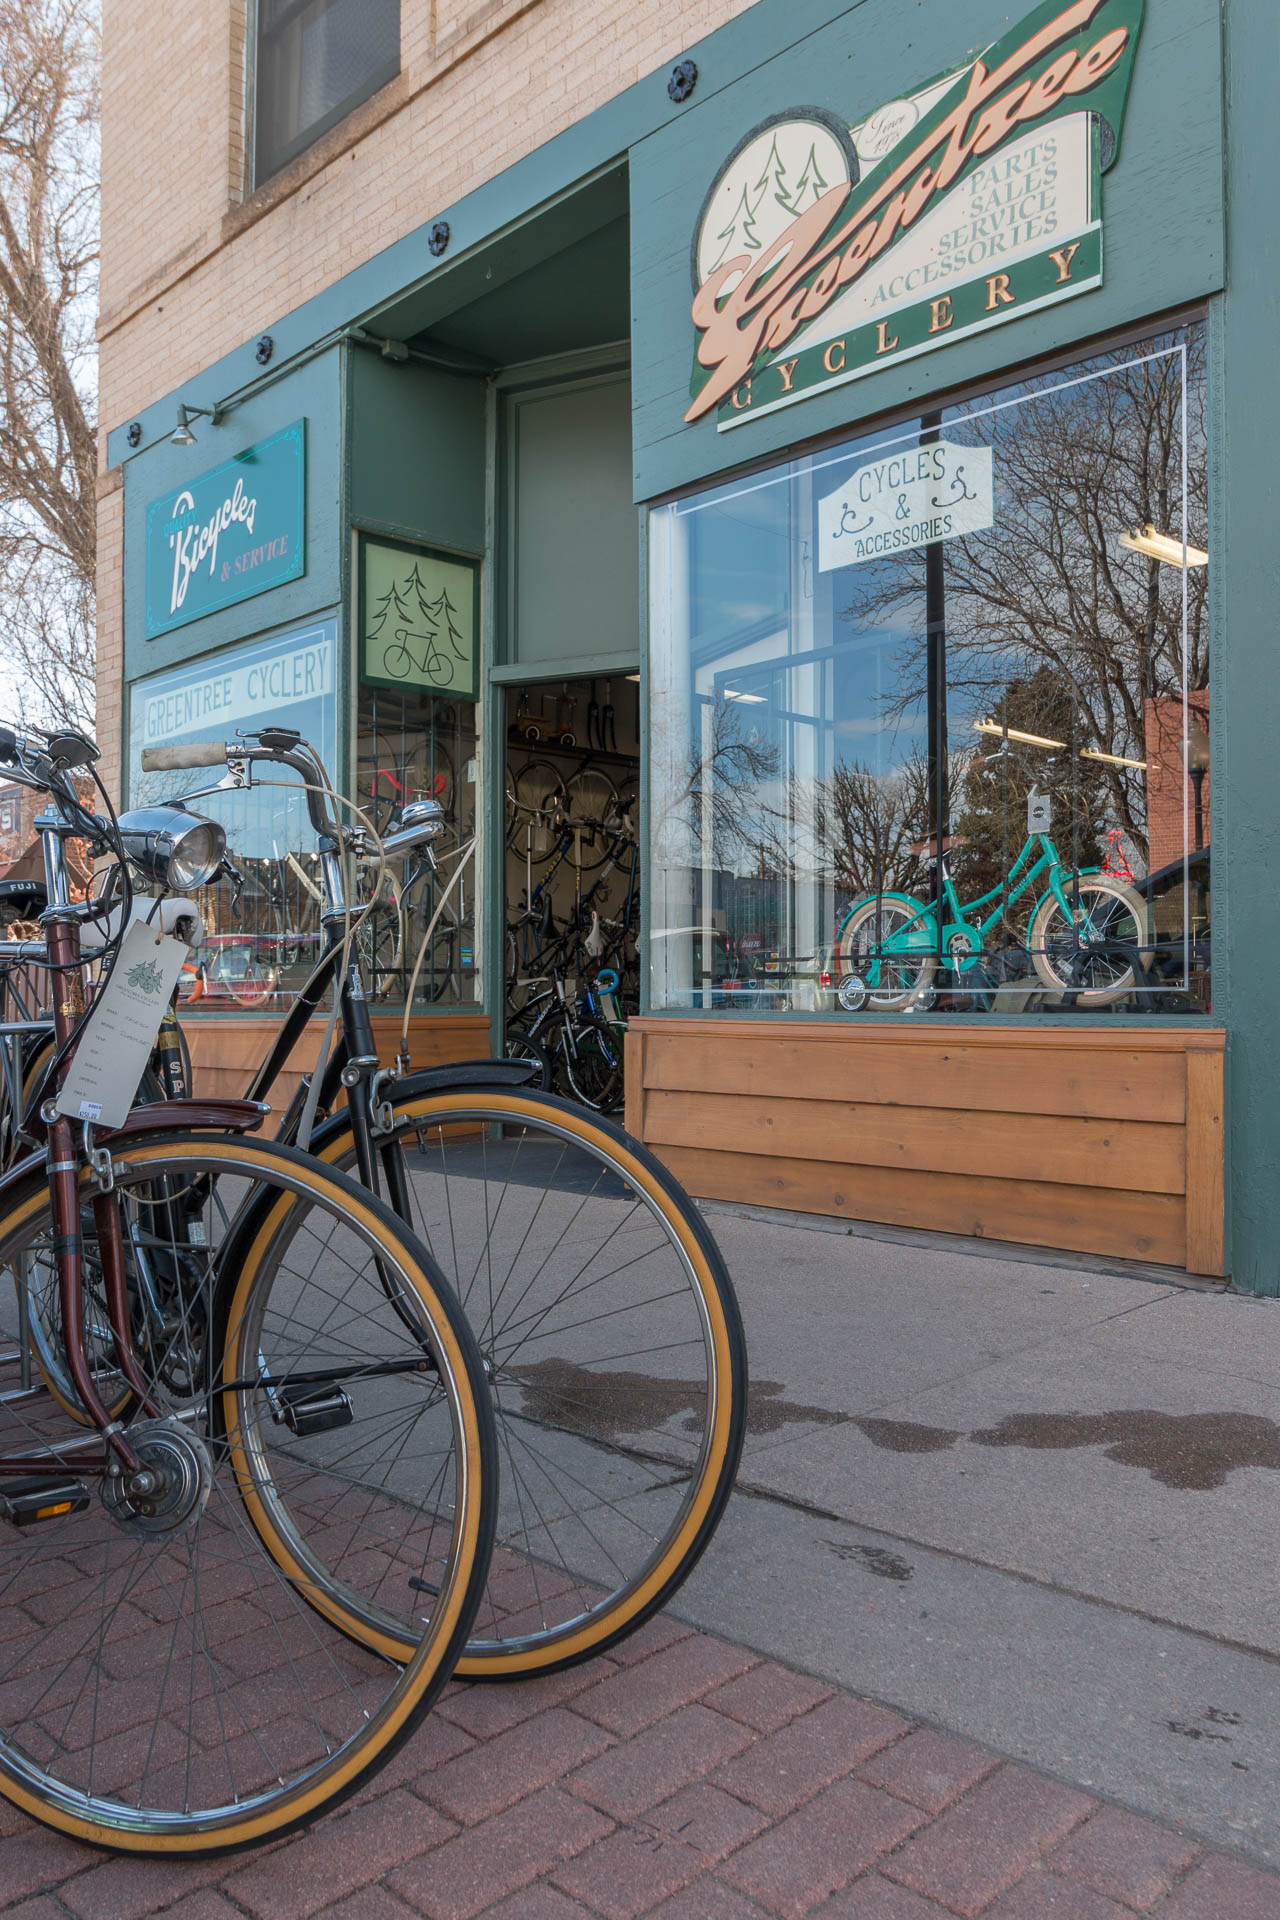 The GreenTree Cyclery on South Pearl Street in Denver.